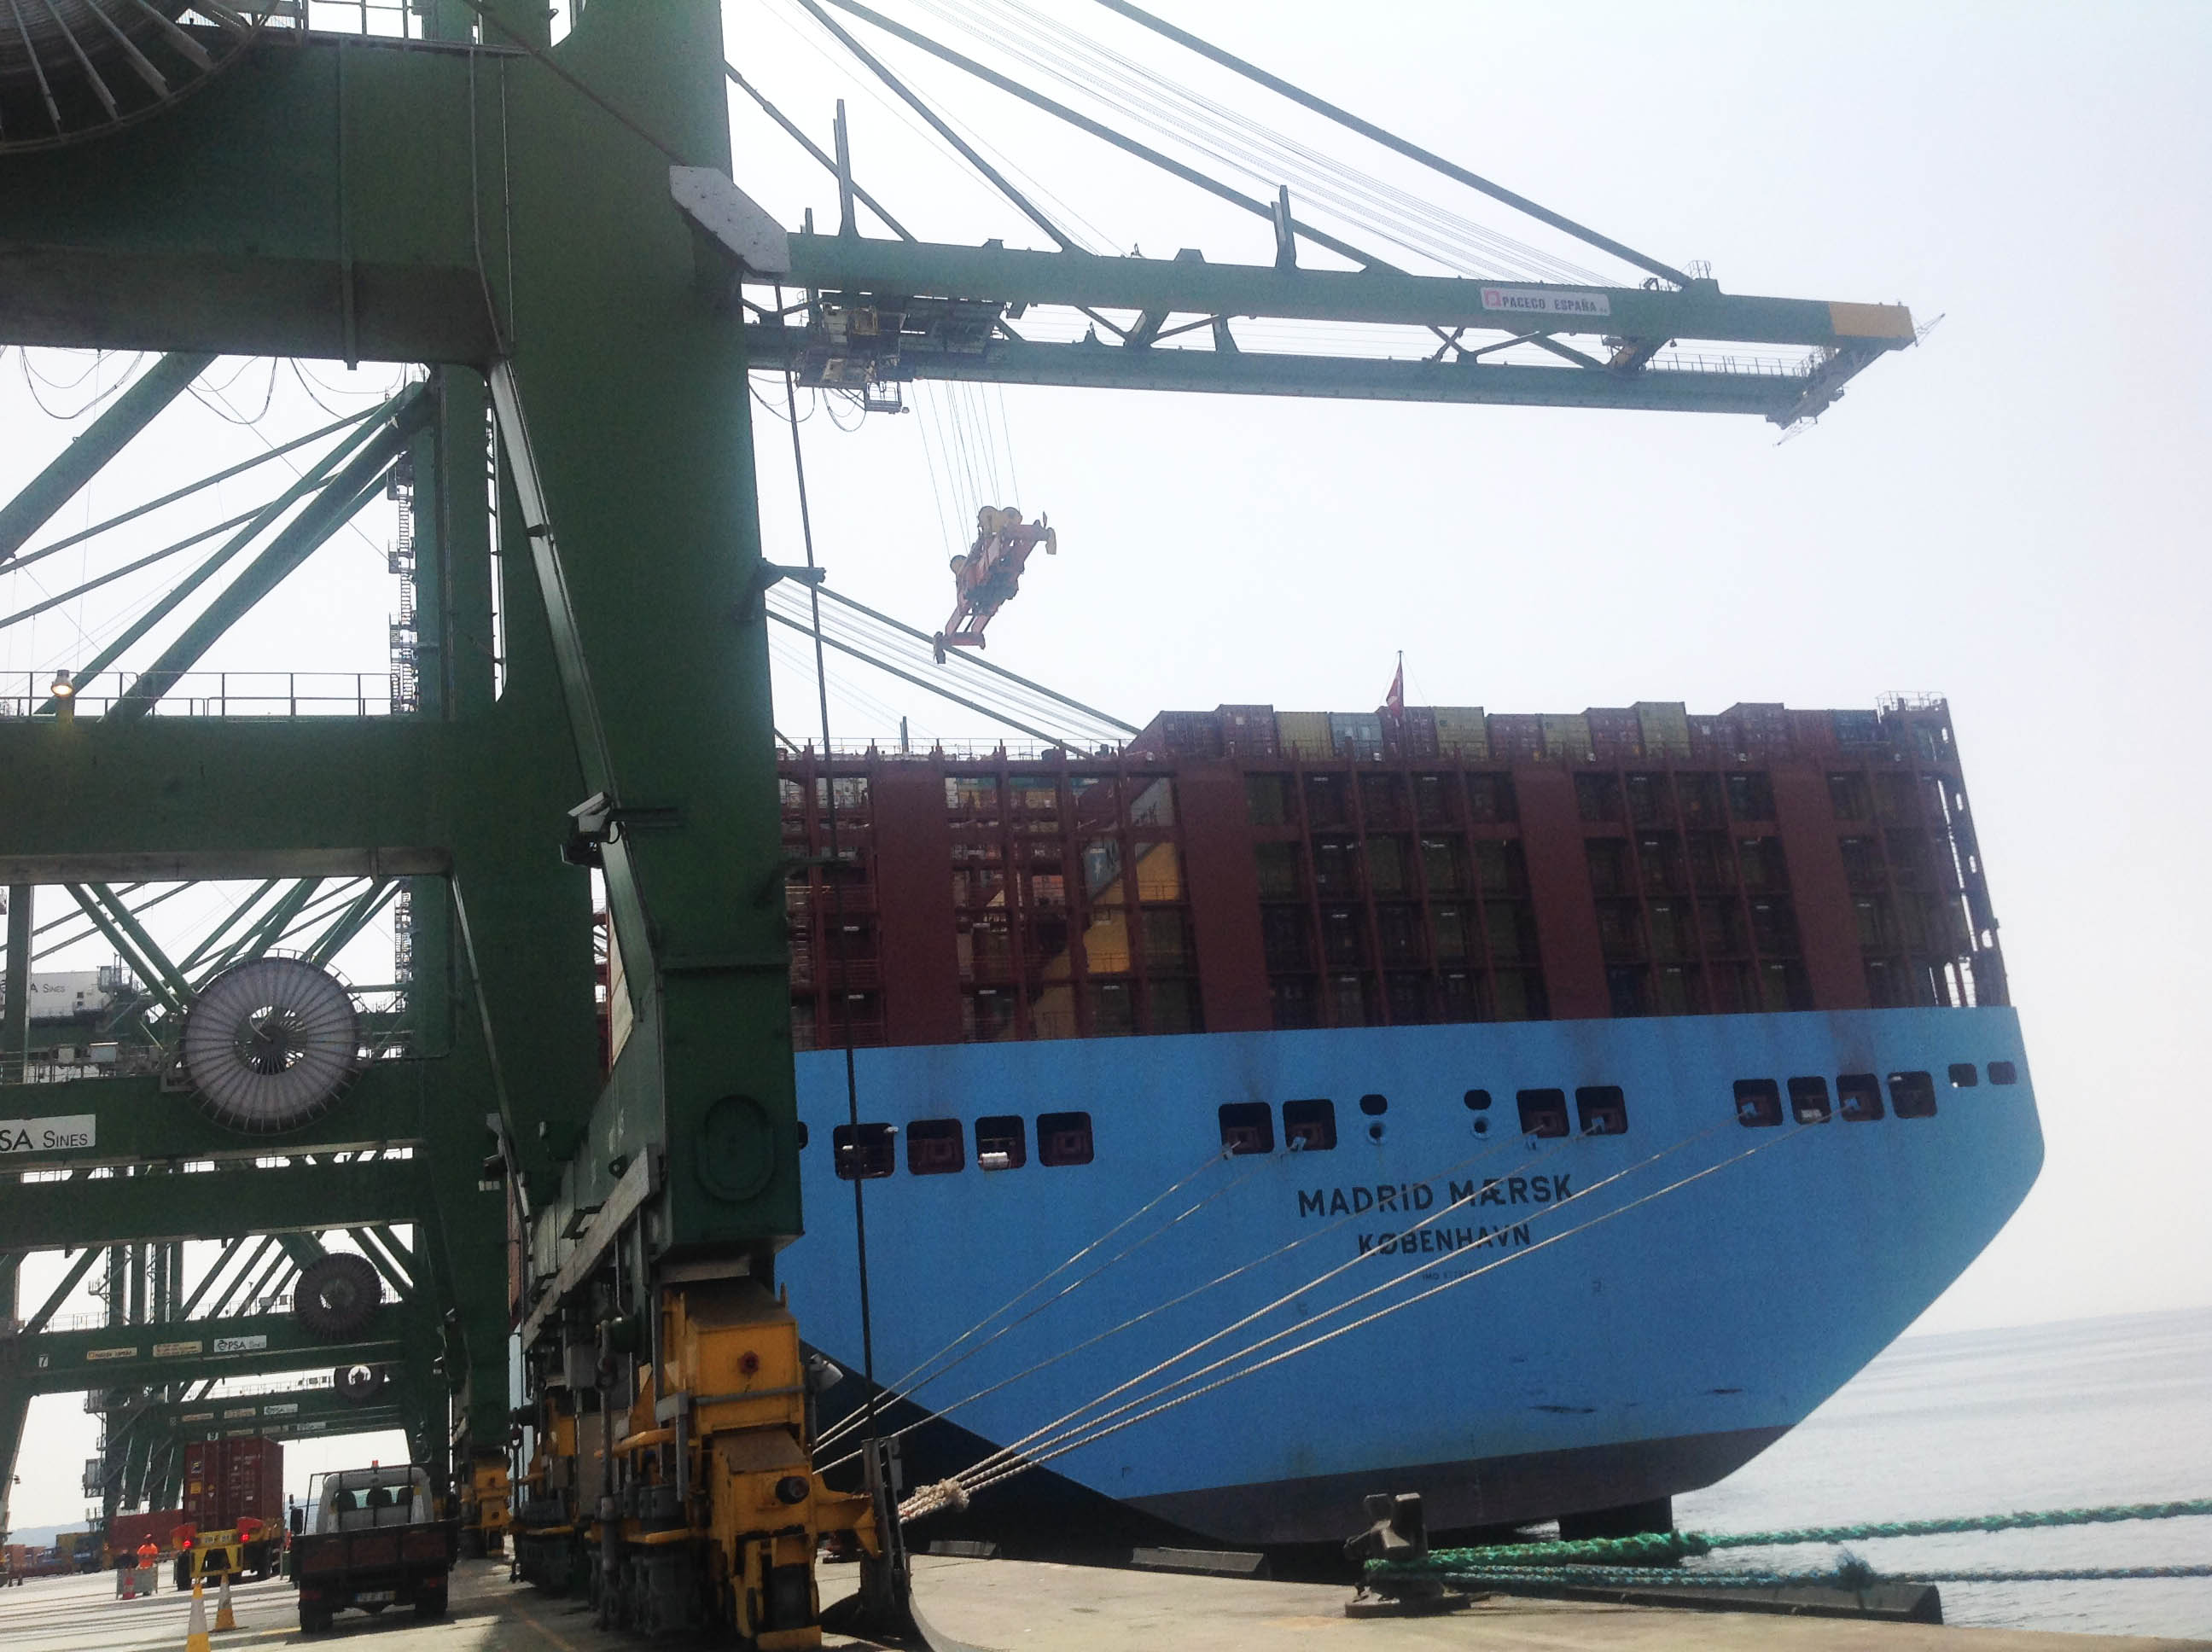 Madrid Maersk, one of the world's largest container ships